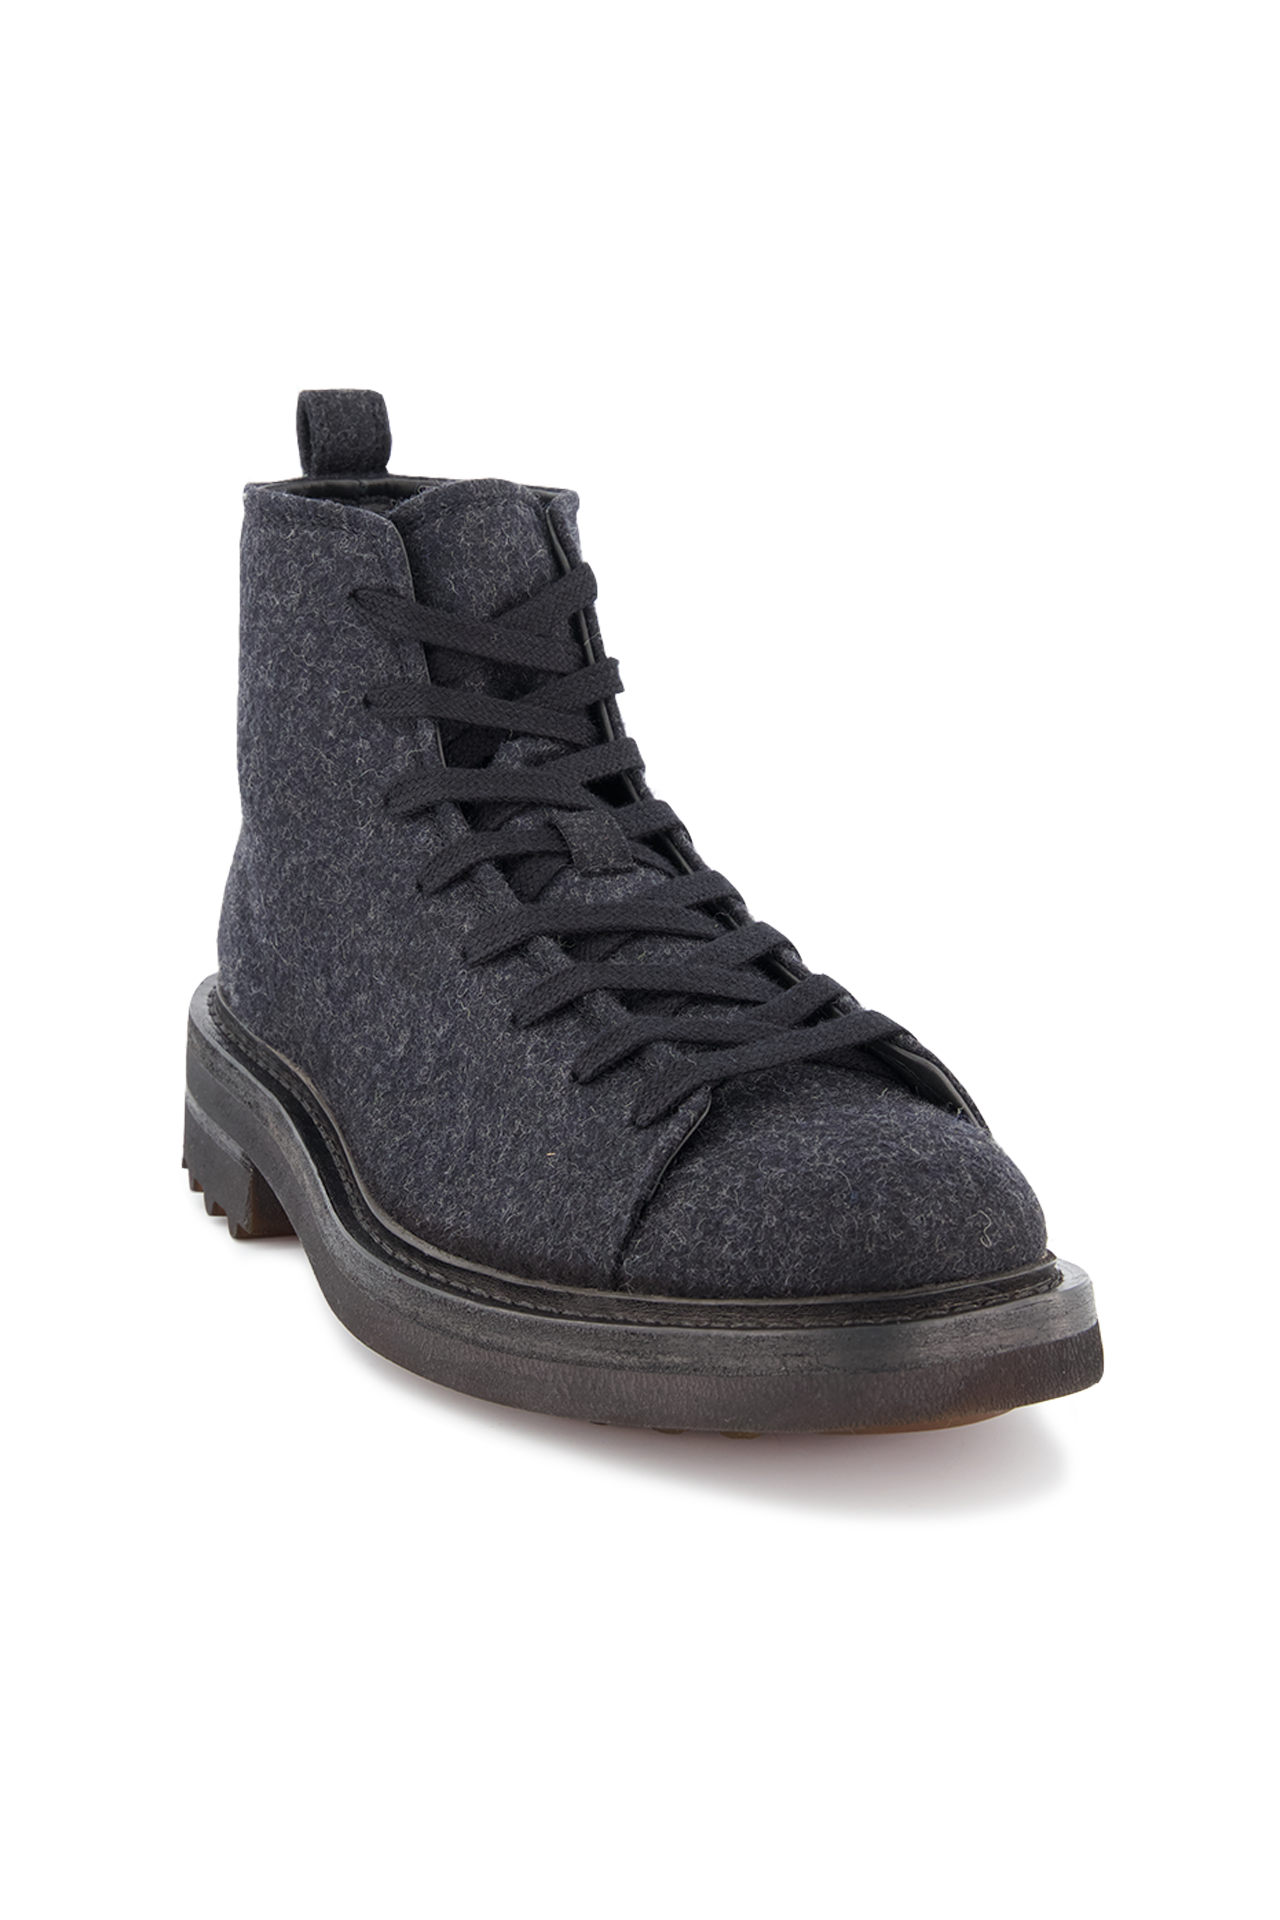 Front angled view of John Varvatos Essex Trooper Boot